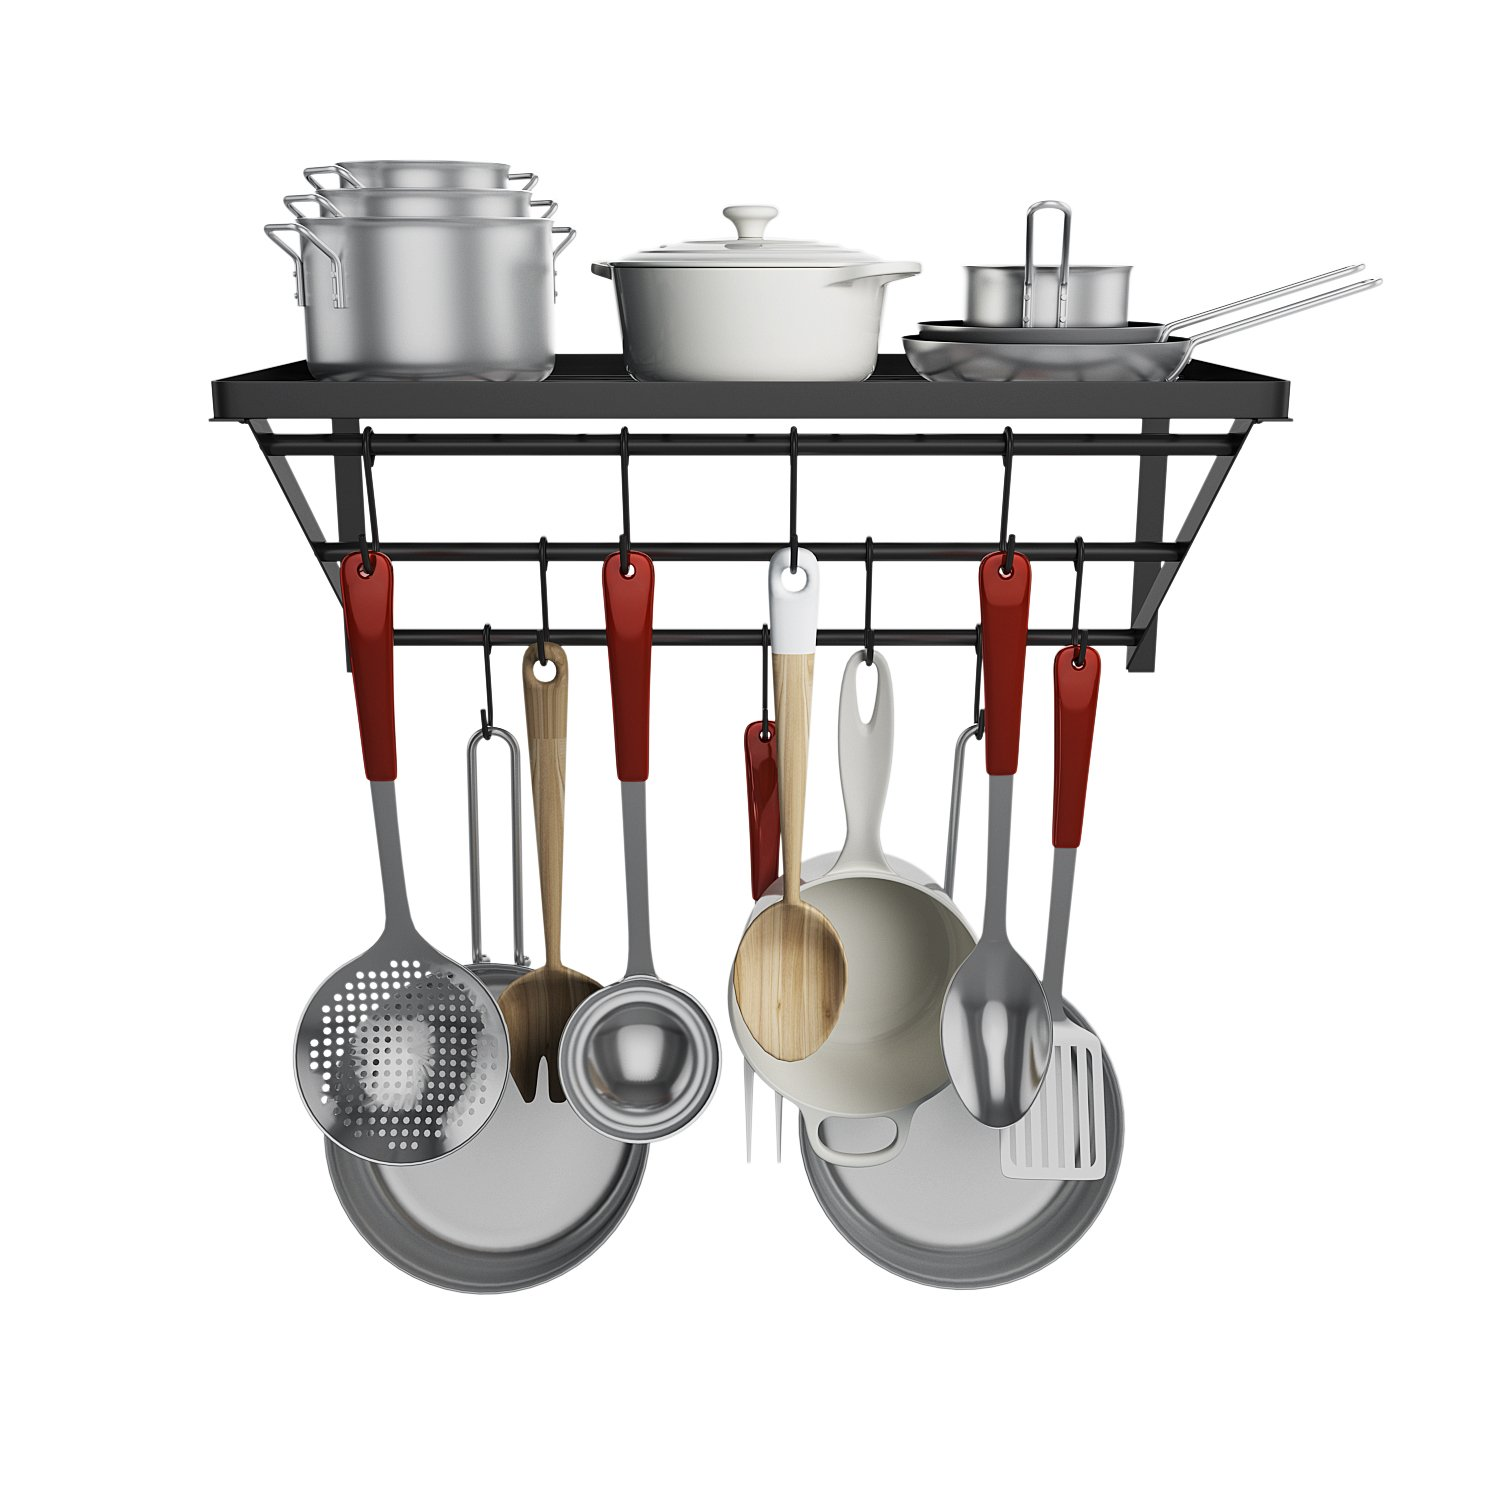 [ US STOCK ] Pot Pan Rack, Home Kitchen Cooking Food Wall Mounted Floating Storage Organizer With 10 Hooks Black Stainless Steel (Black)